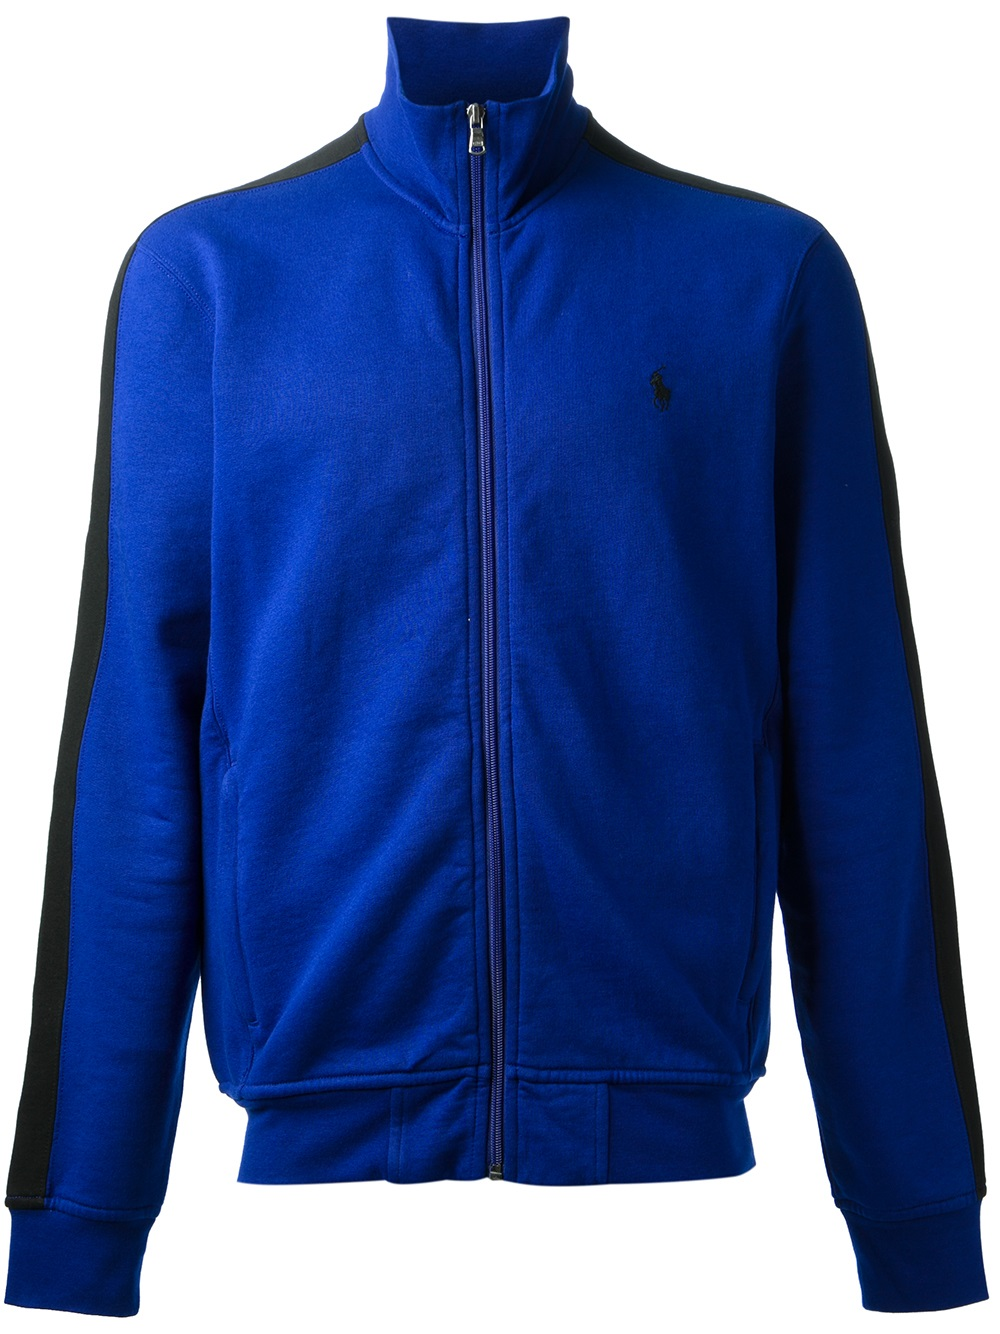 polo ralph lauren zipped sweatshirt in blue for men lyst. Black Bedroom Furniture Sets. Home Design Ideas